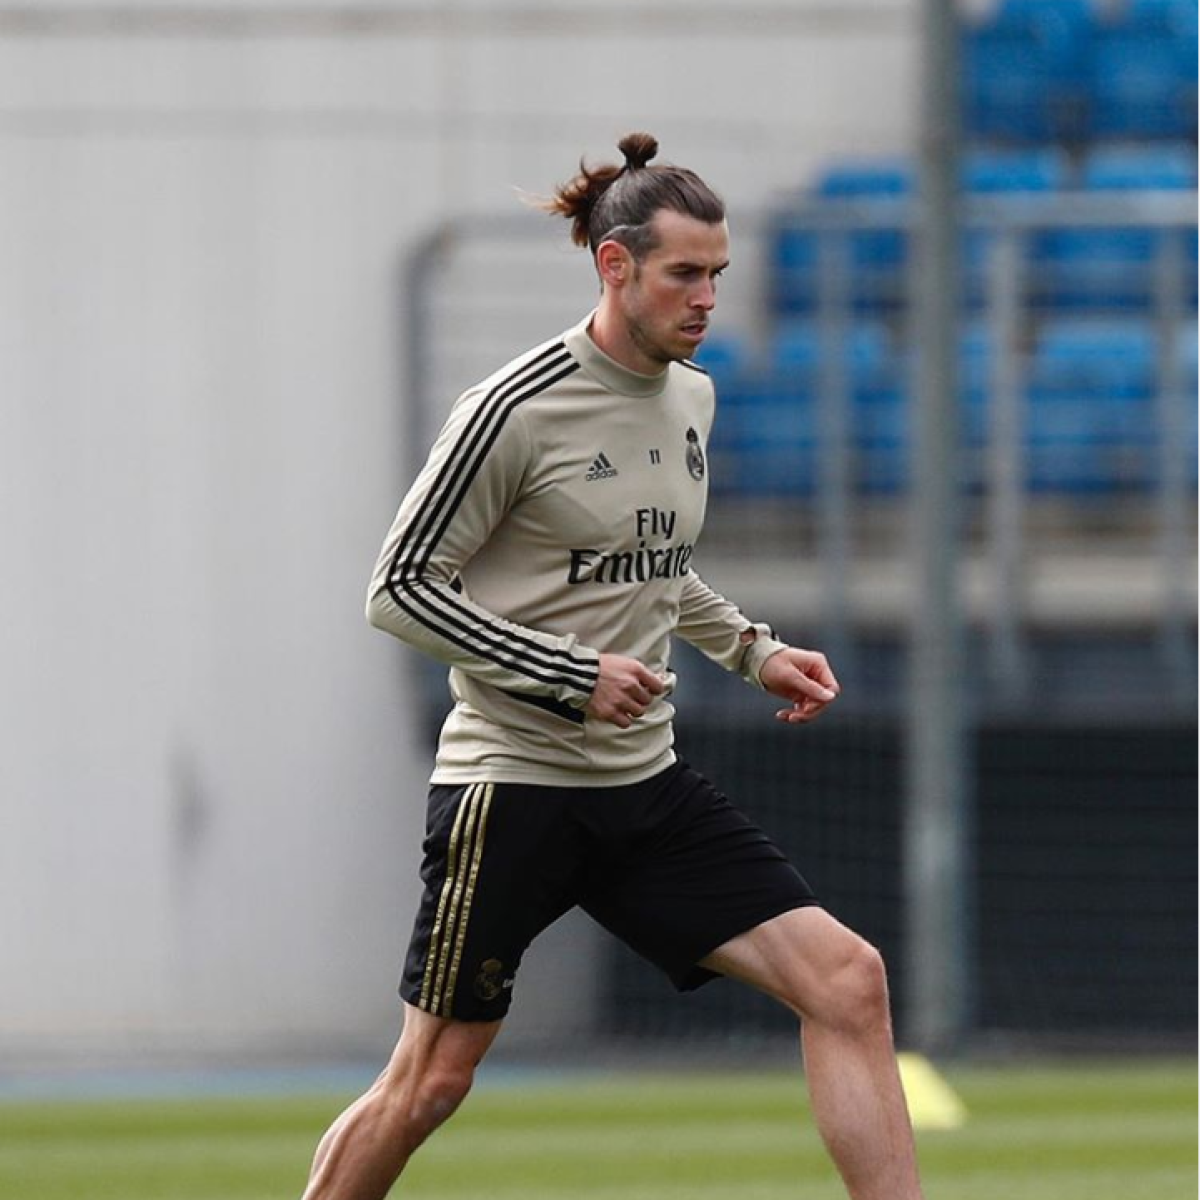 Zinedine Zidane explains why Gareth Bale was left out from Real Madrid's squad